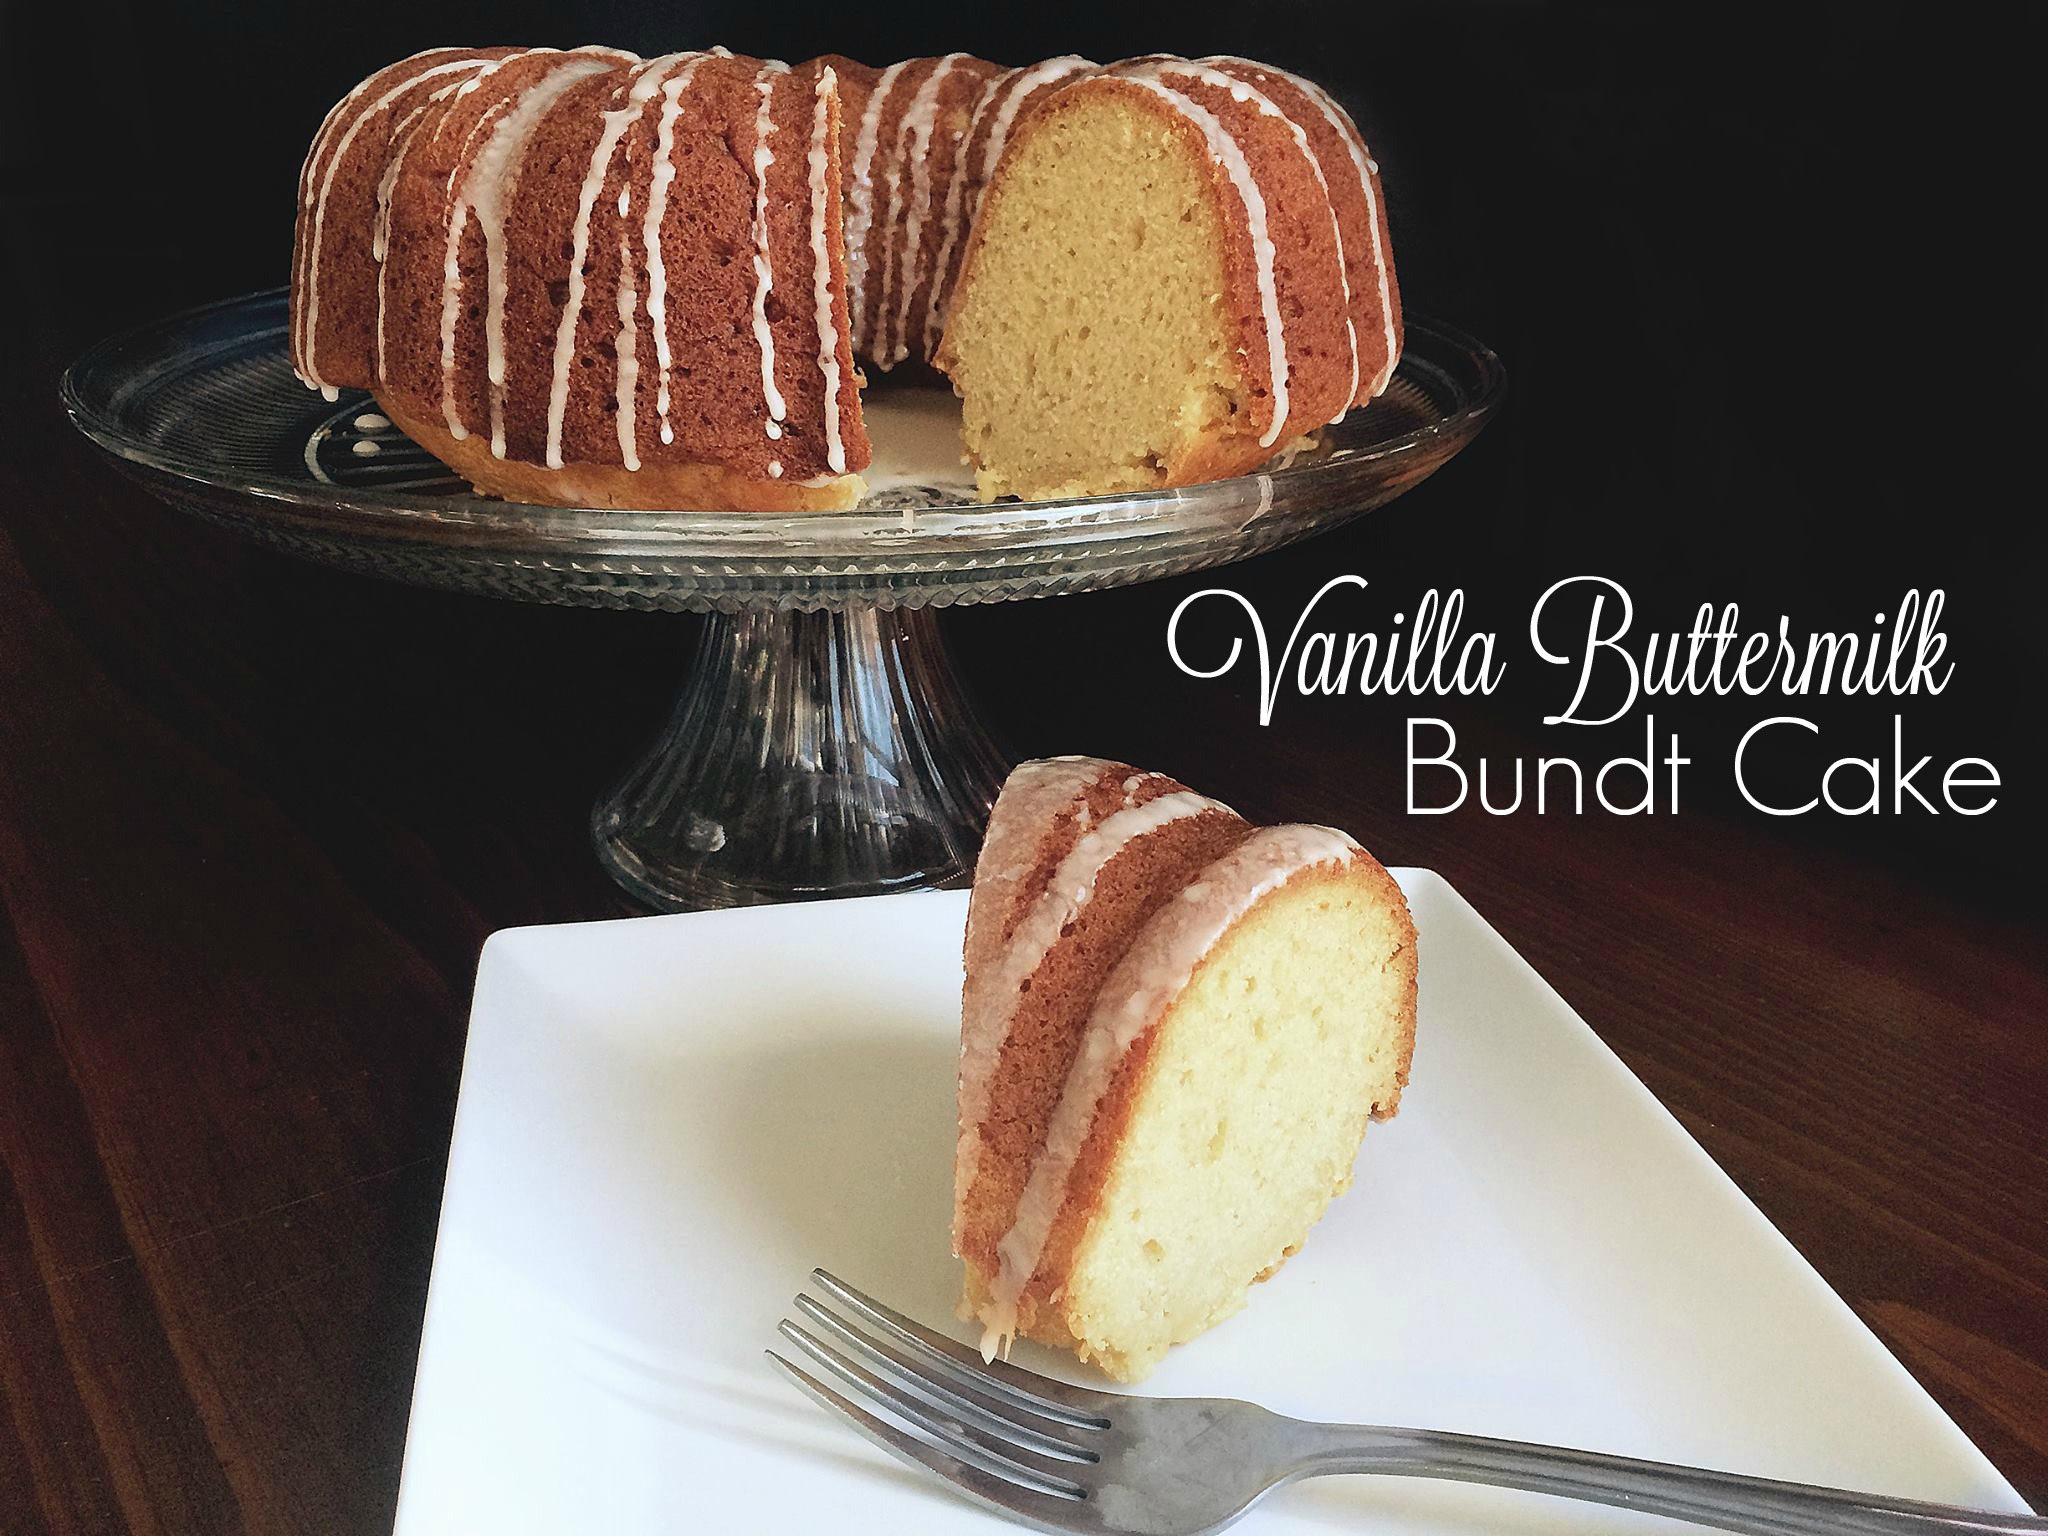 Vanilla Buttermilk Bundt Cake